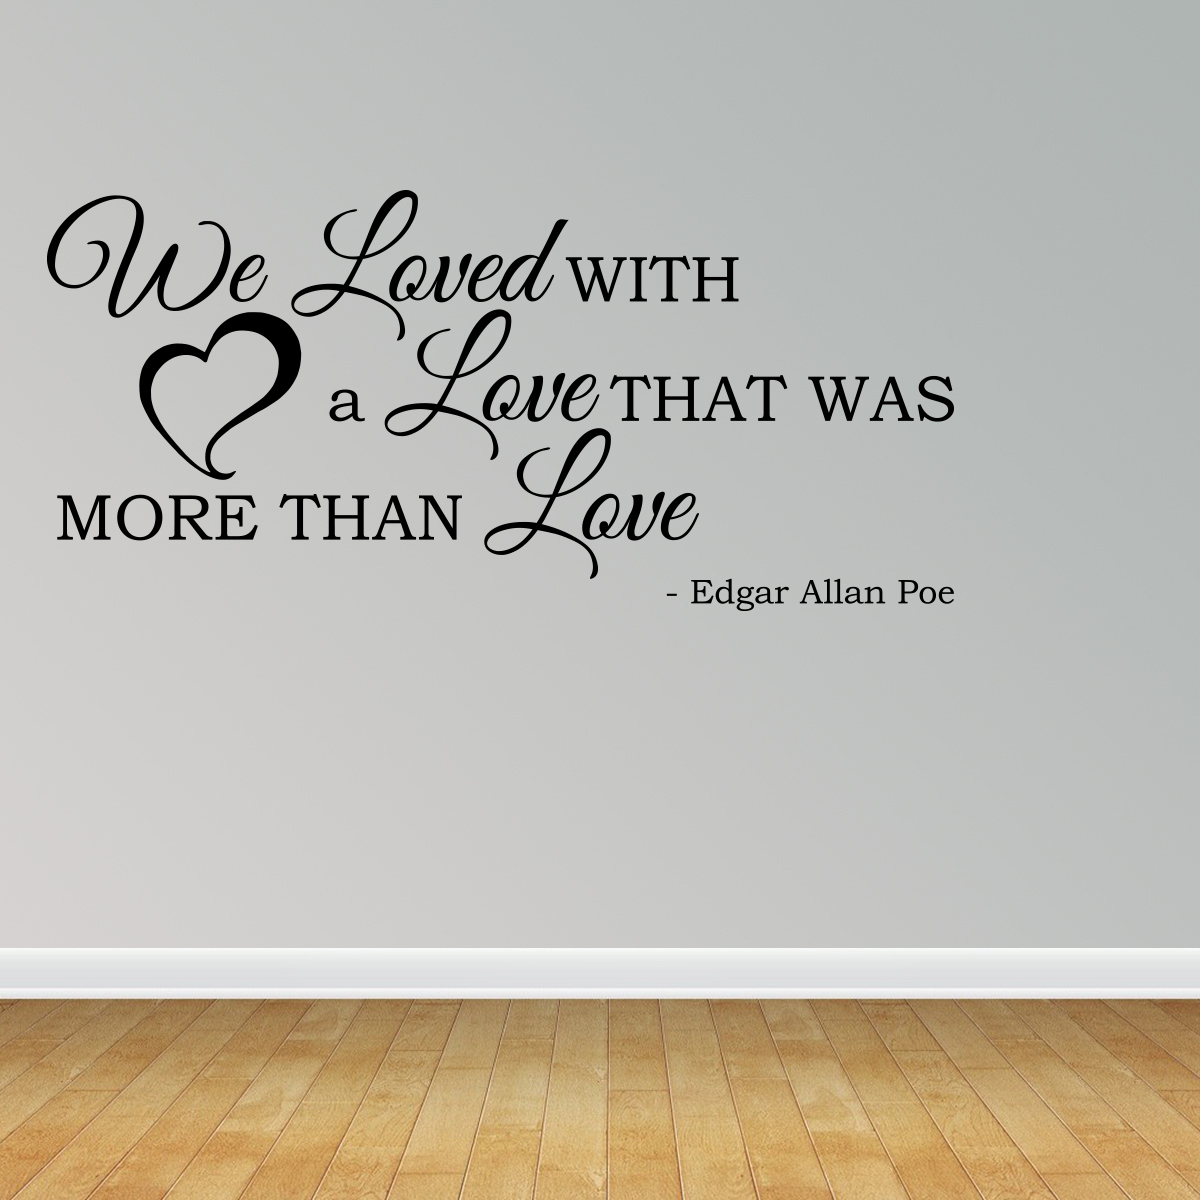 Wall Decal Quote We Loved With A Love Edgar Allan Poe Sayings Home